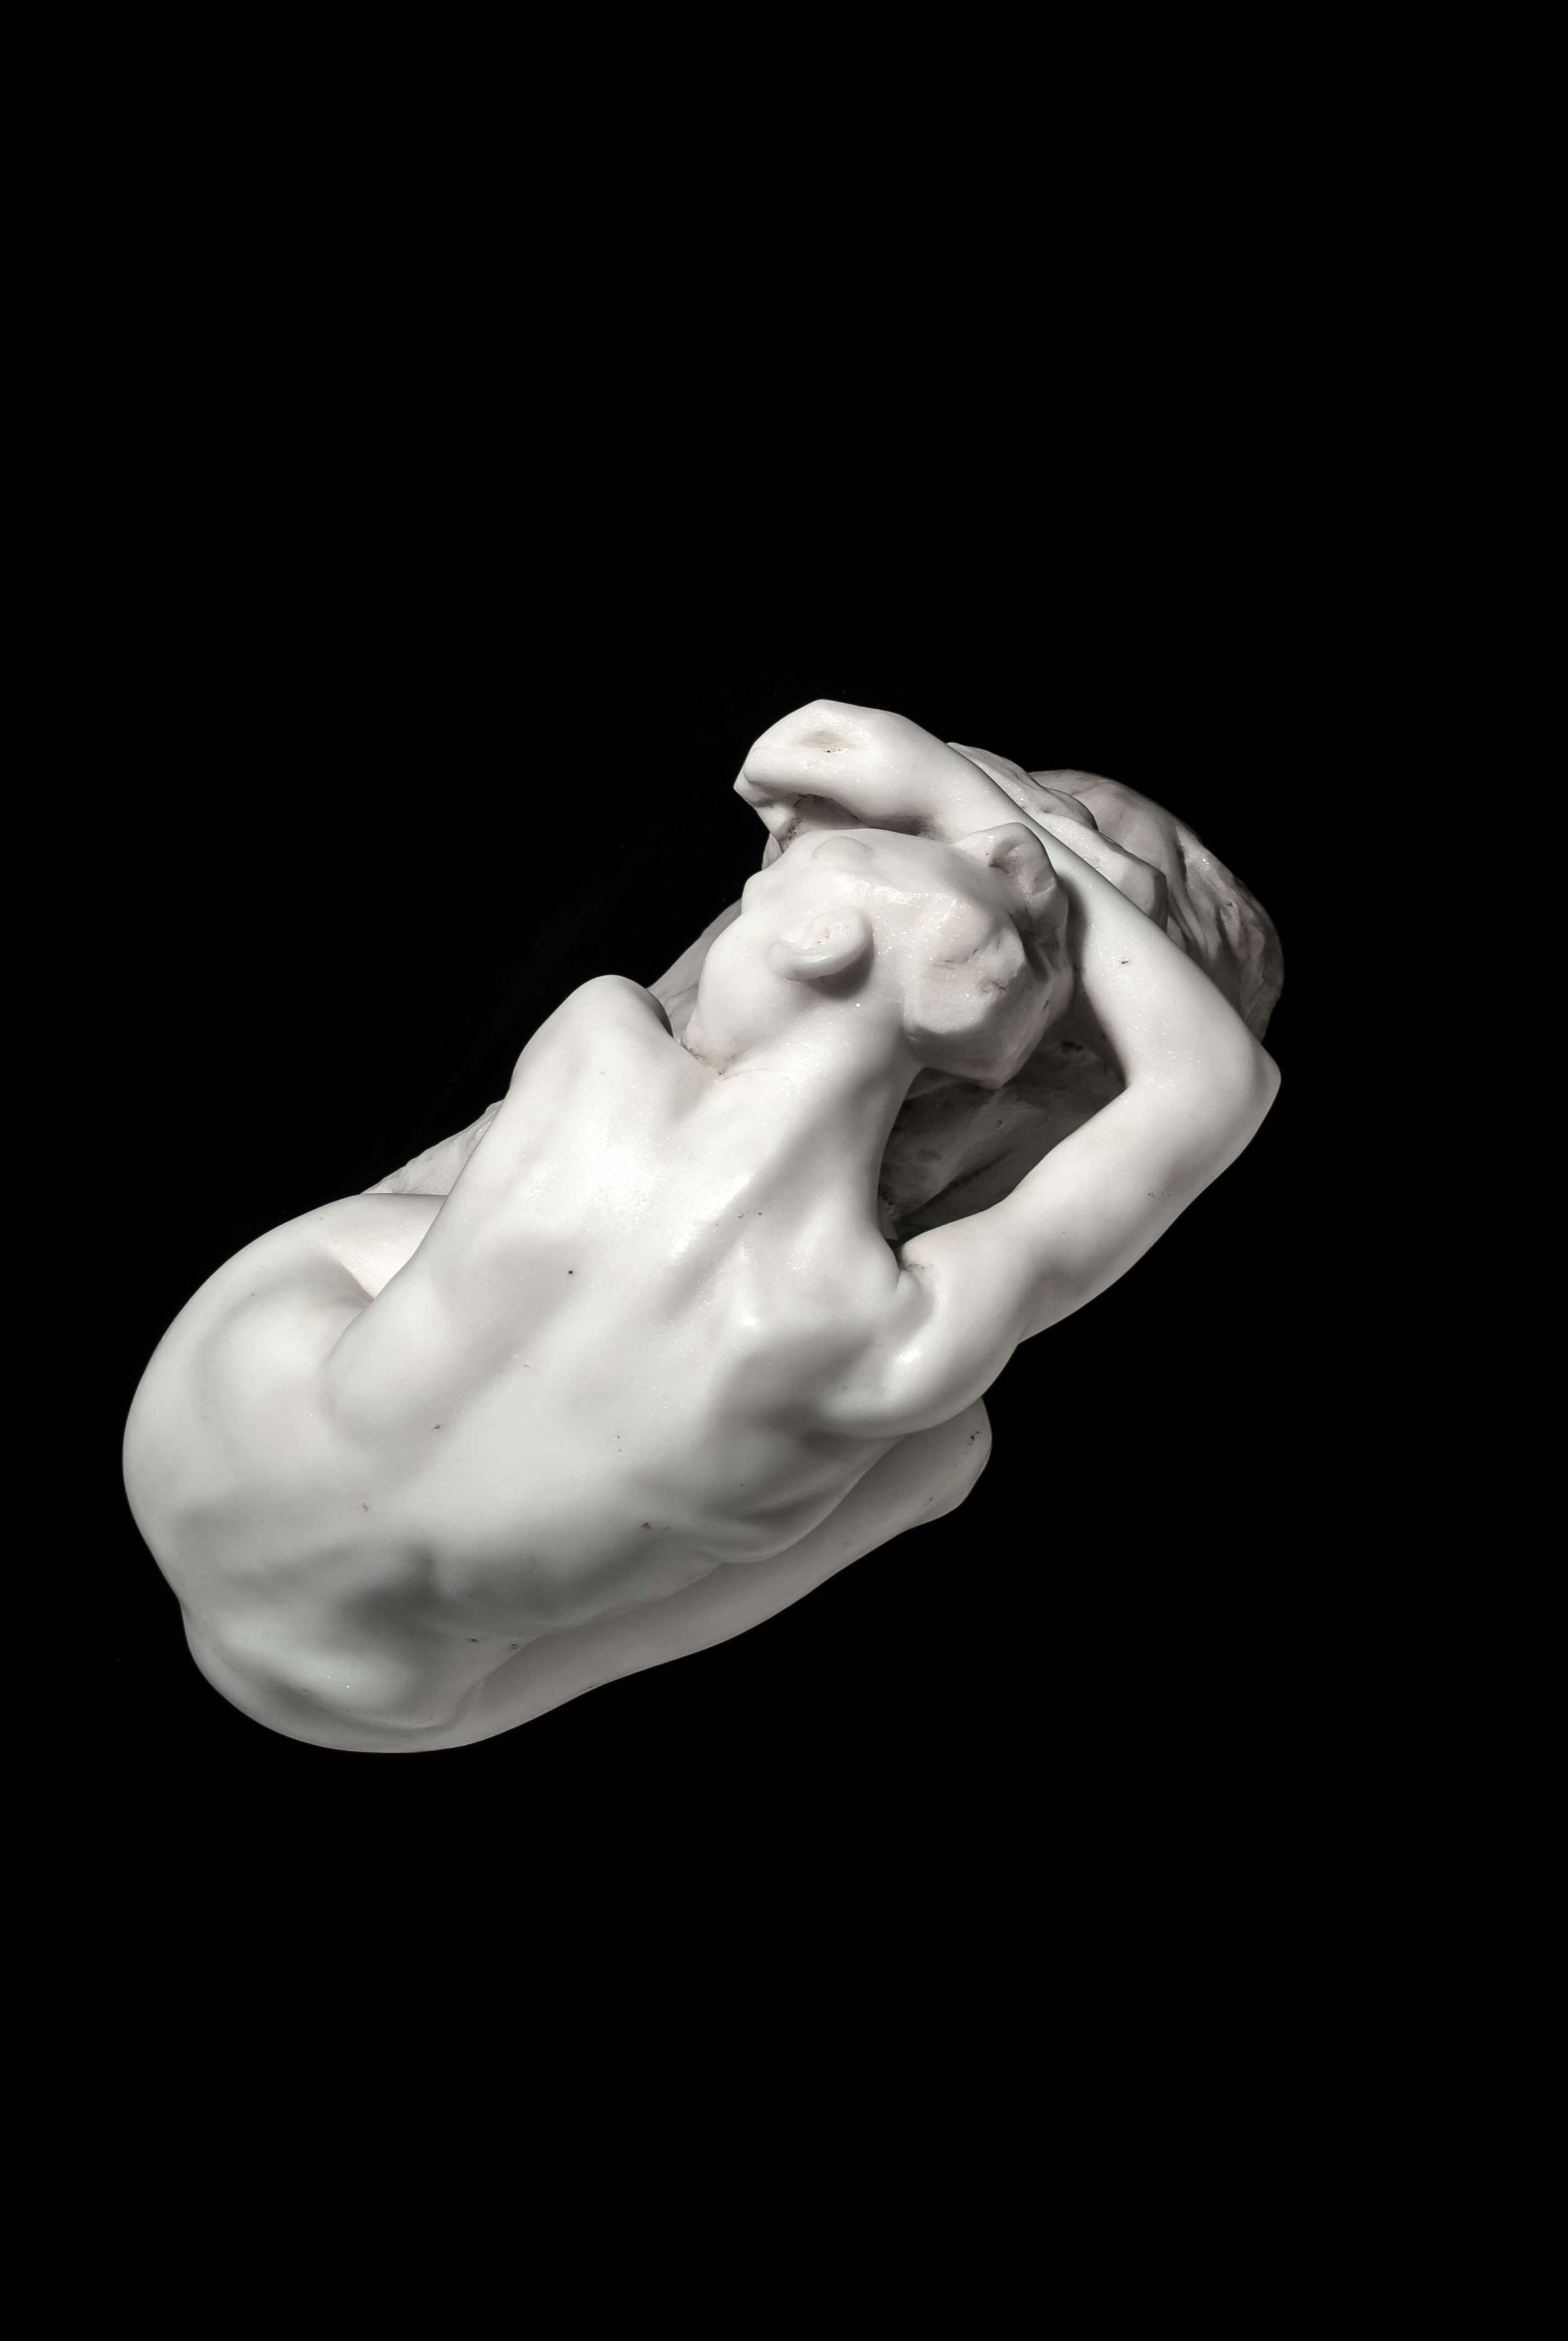 Auguste Rodin, Andromède, 1887, marmo